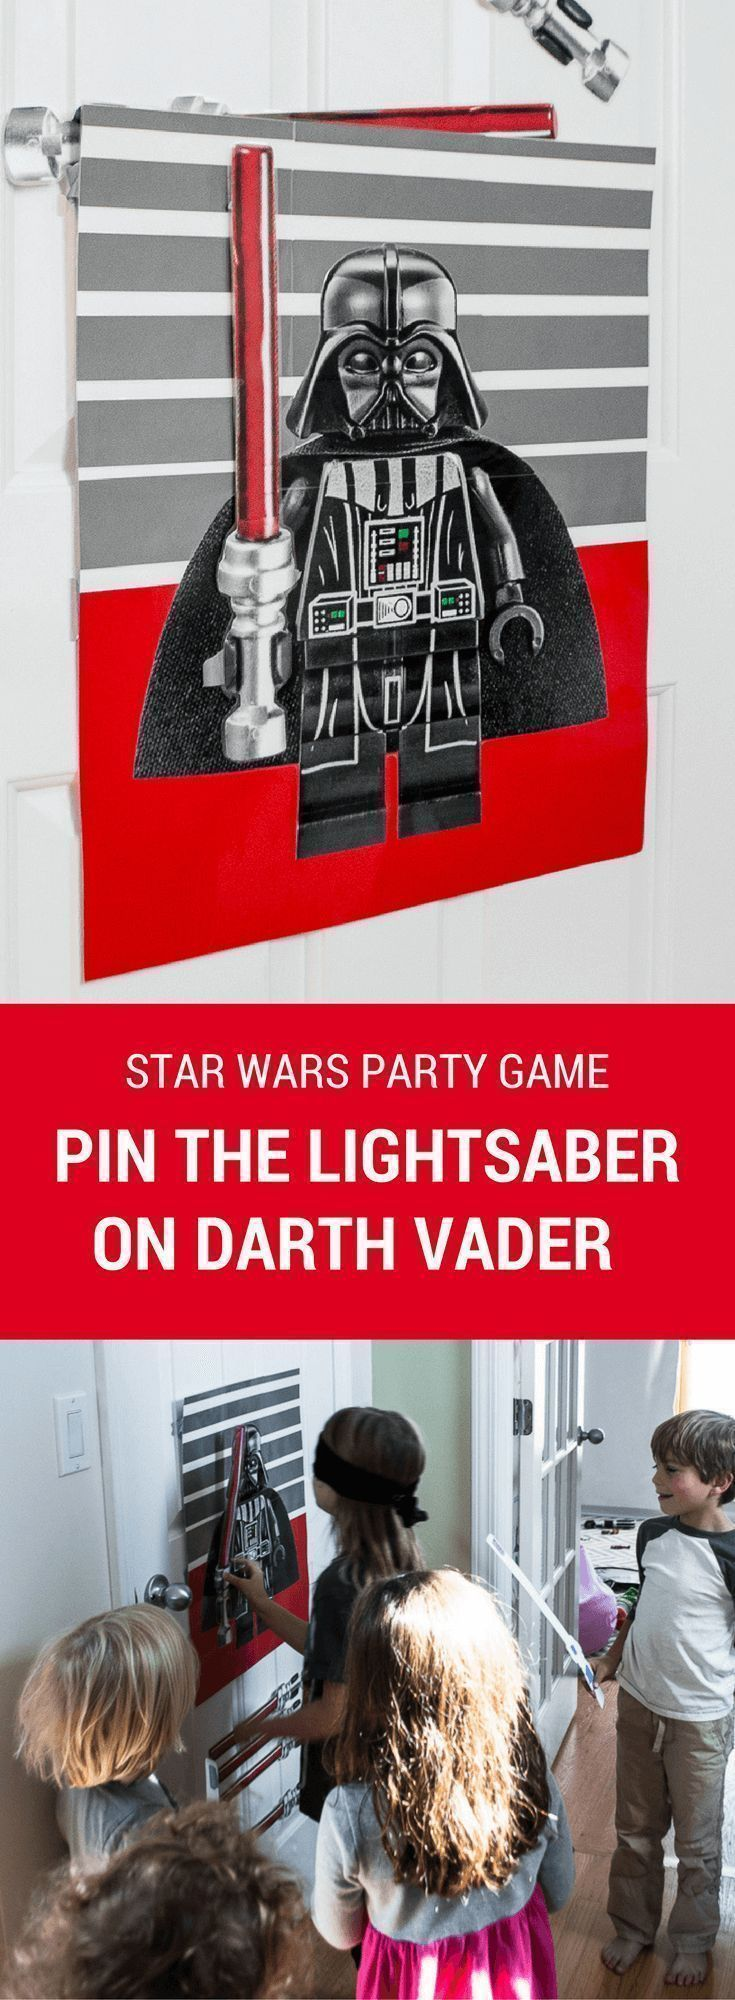 Make this easy and fun Star Wars DIY Birthday Party Game: Pin The Lightsaber On Darth Vader #starwars #darthvader #party #game